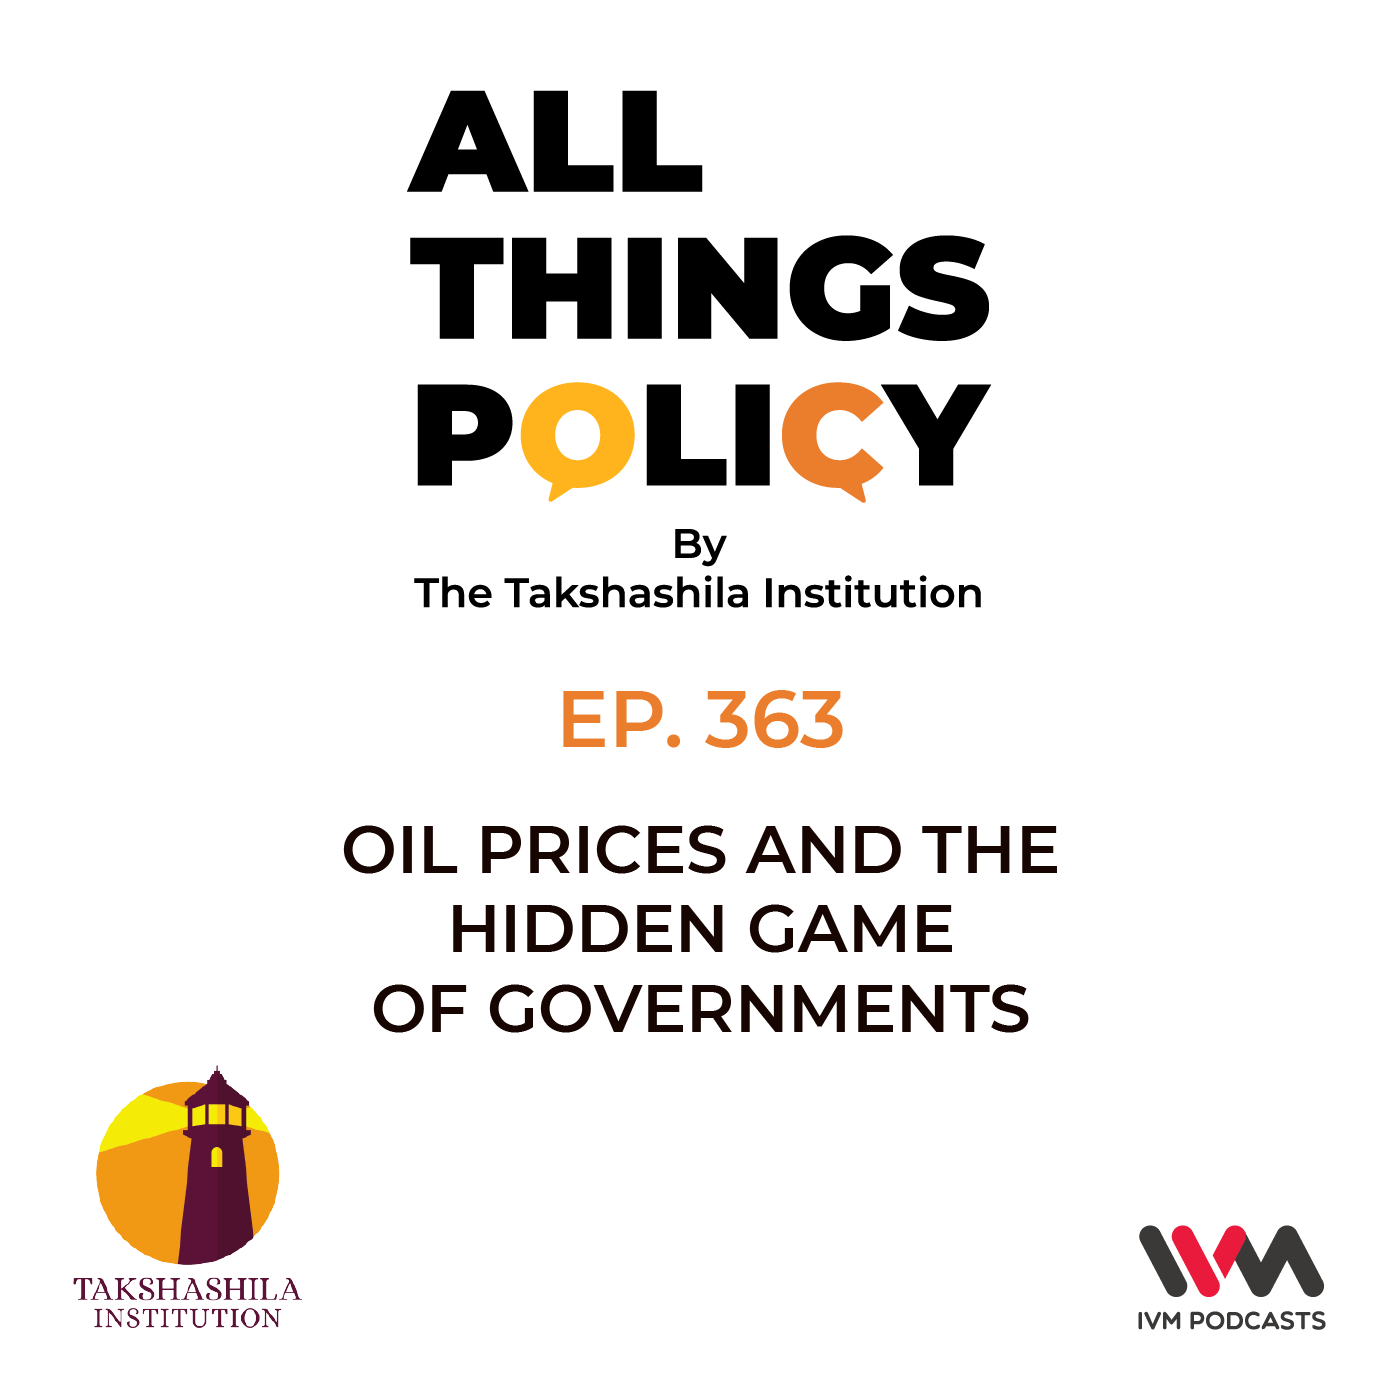 Ep. 363: Oil Prices and the Hidden Game of Governments